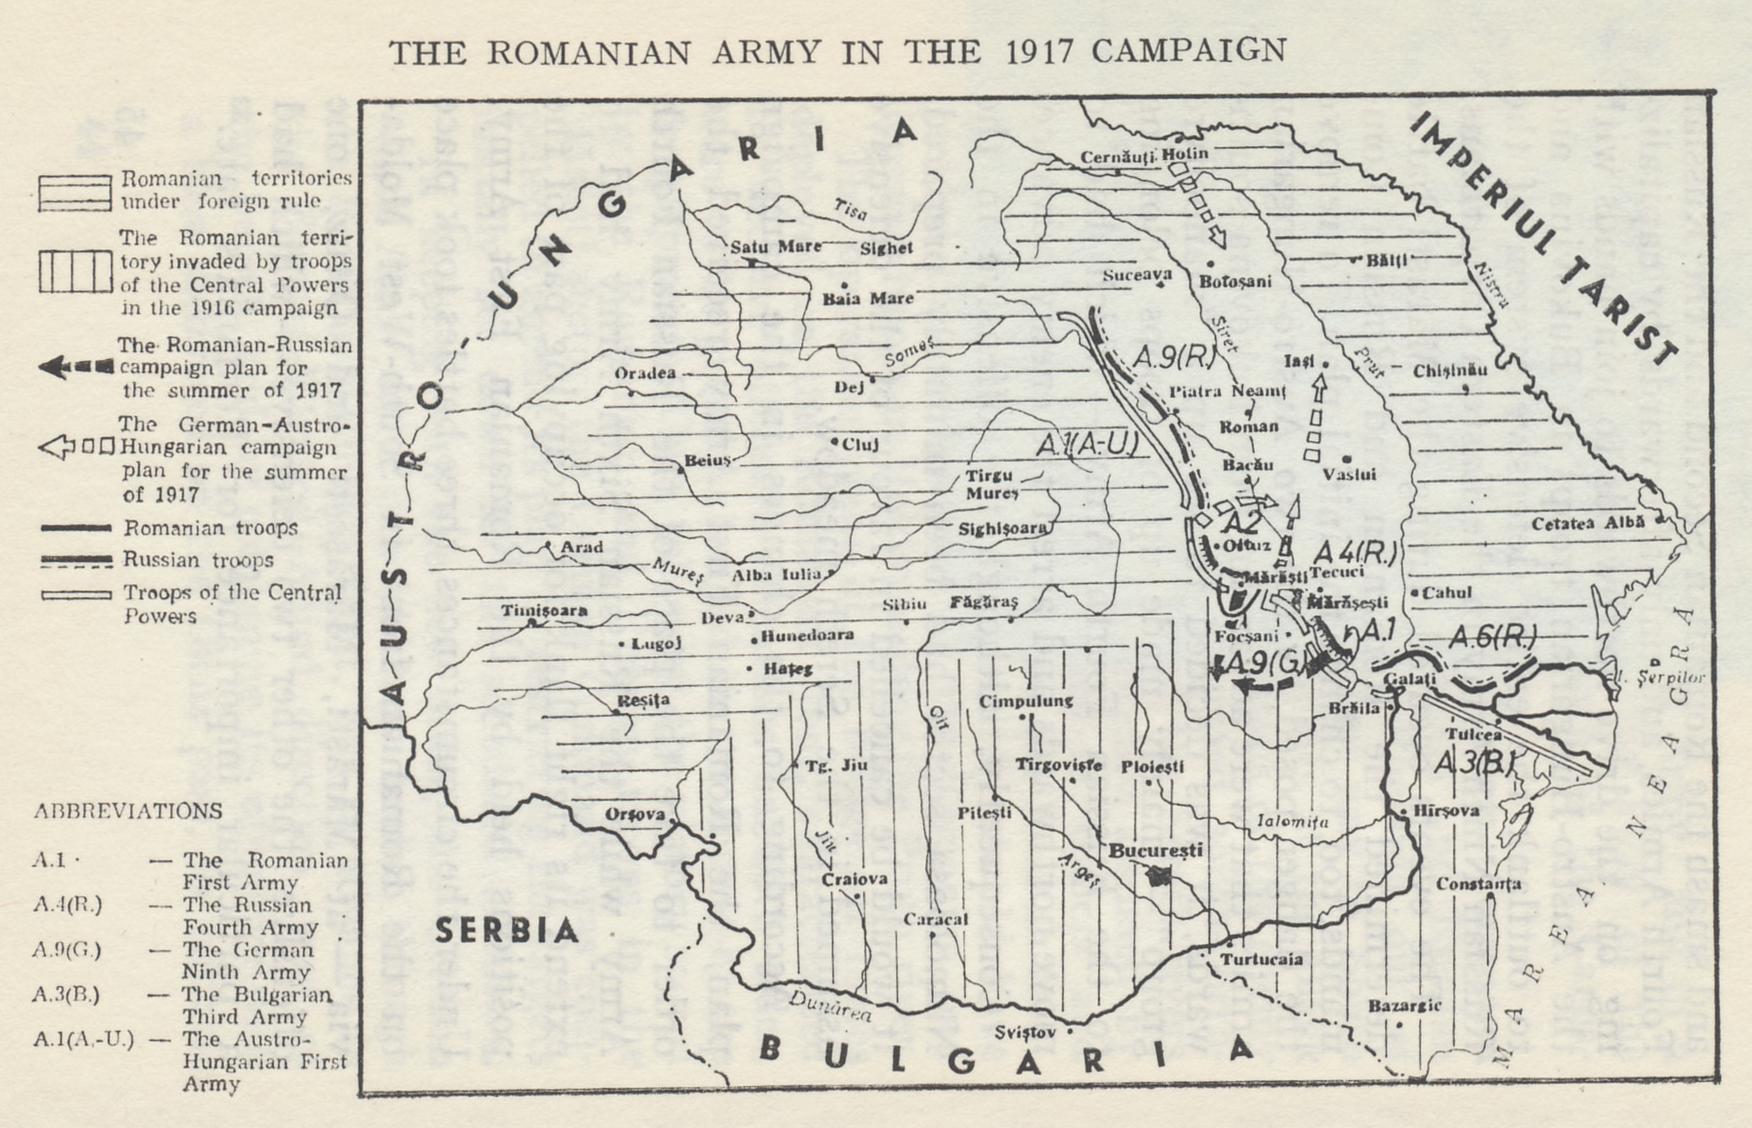 Map of Romania and the Allied and Central Power campaign plans for 1917. 'Romanian Territories under Foreign Rule' include Transylvania, Austria-Hungary, northwest of the Carpathian Mountains, and Bessarabia, Russia, to the east between the Prut and Nistru Rivers, regions with large ethnic Romanian populations. From 'Romania in World War I, a Synopsis of Military History' by Colonel Dr. Vasile Alexandrescu.